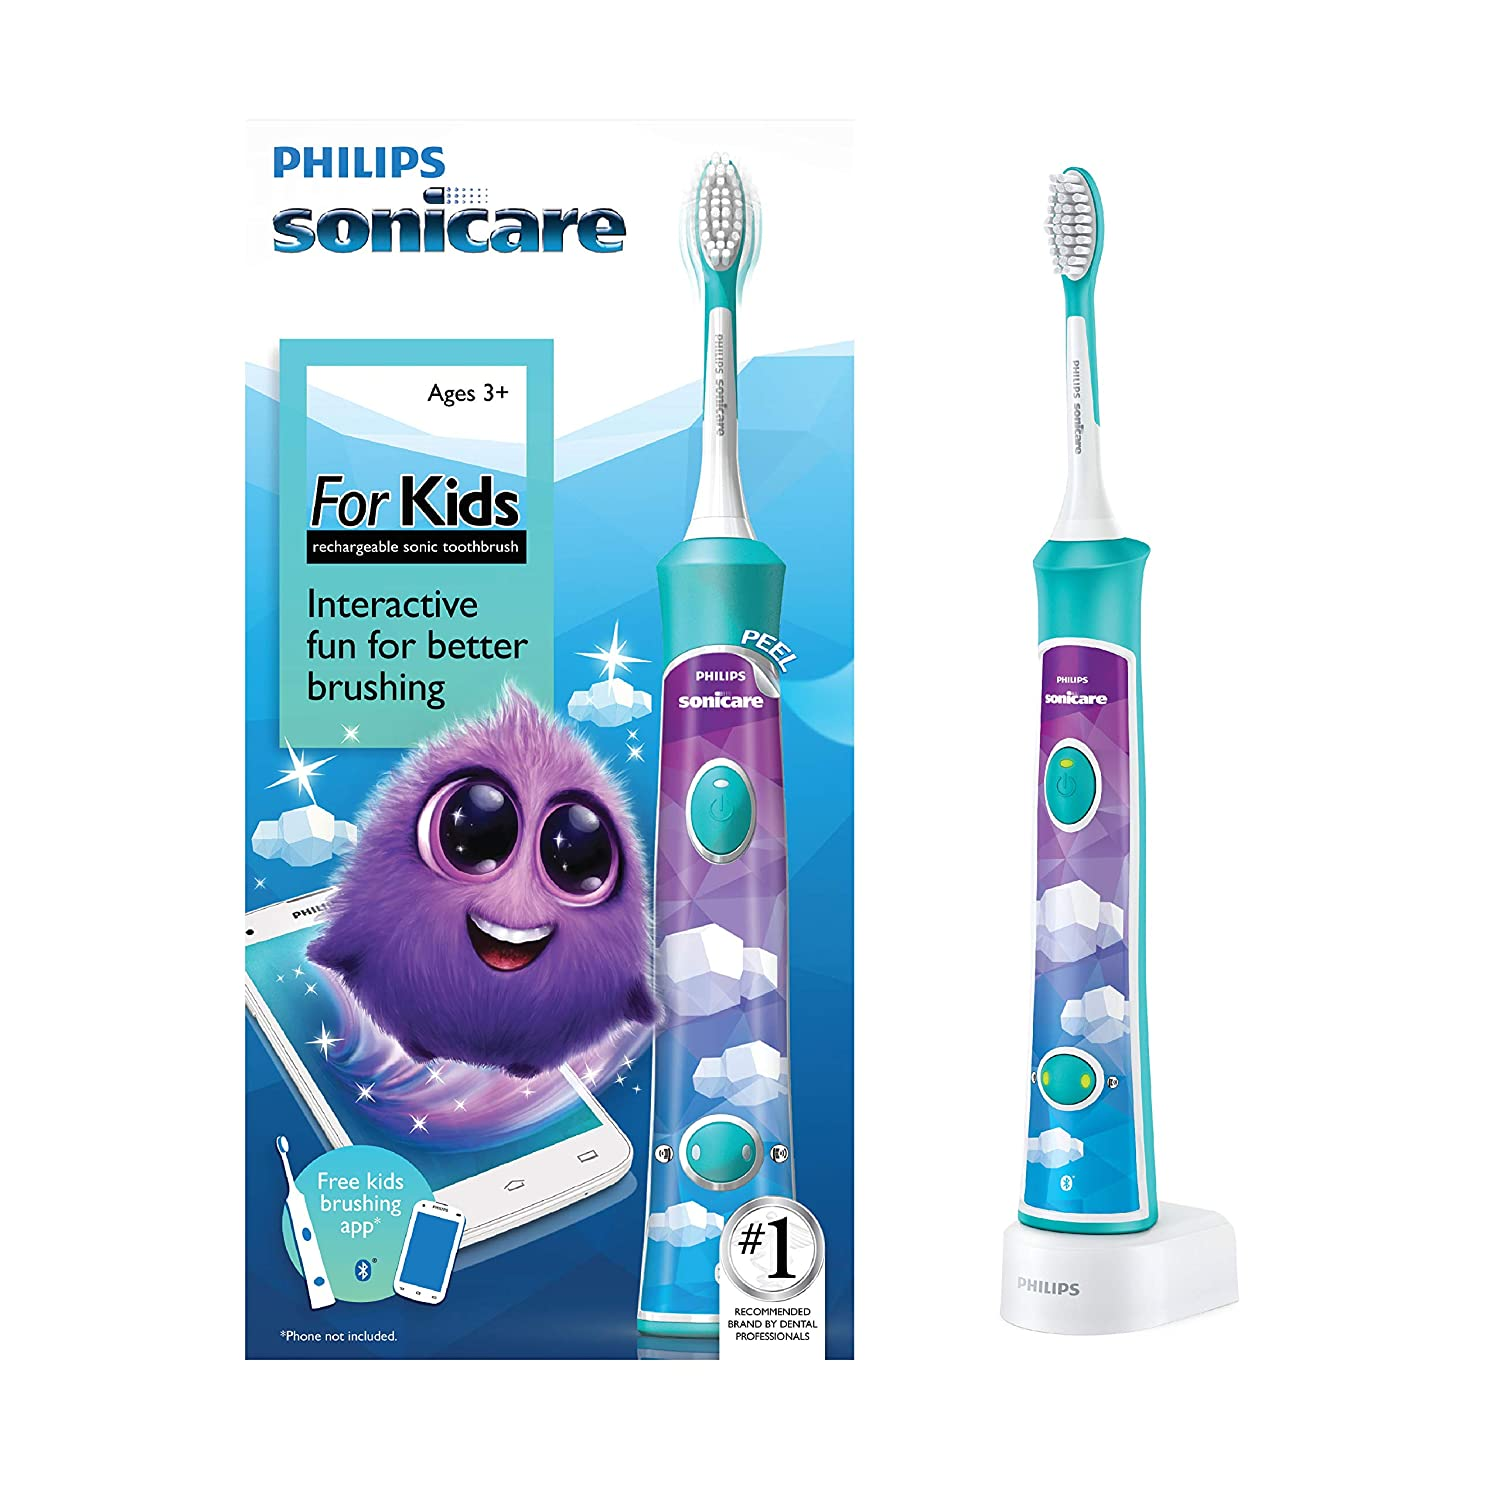 Philips Sonicare for Kids Bluetooth Connected Rechargeable Electric Toothbrush, HX6321/02